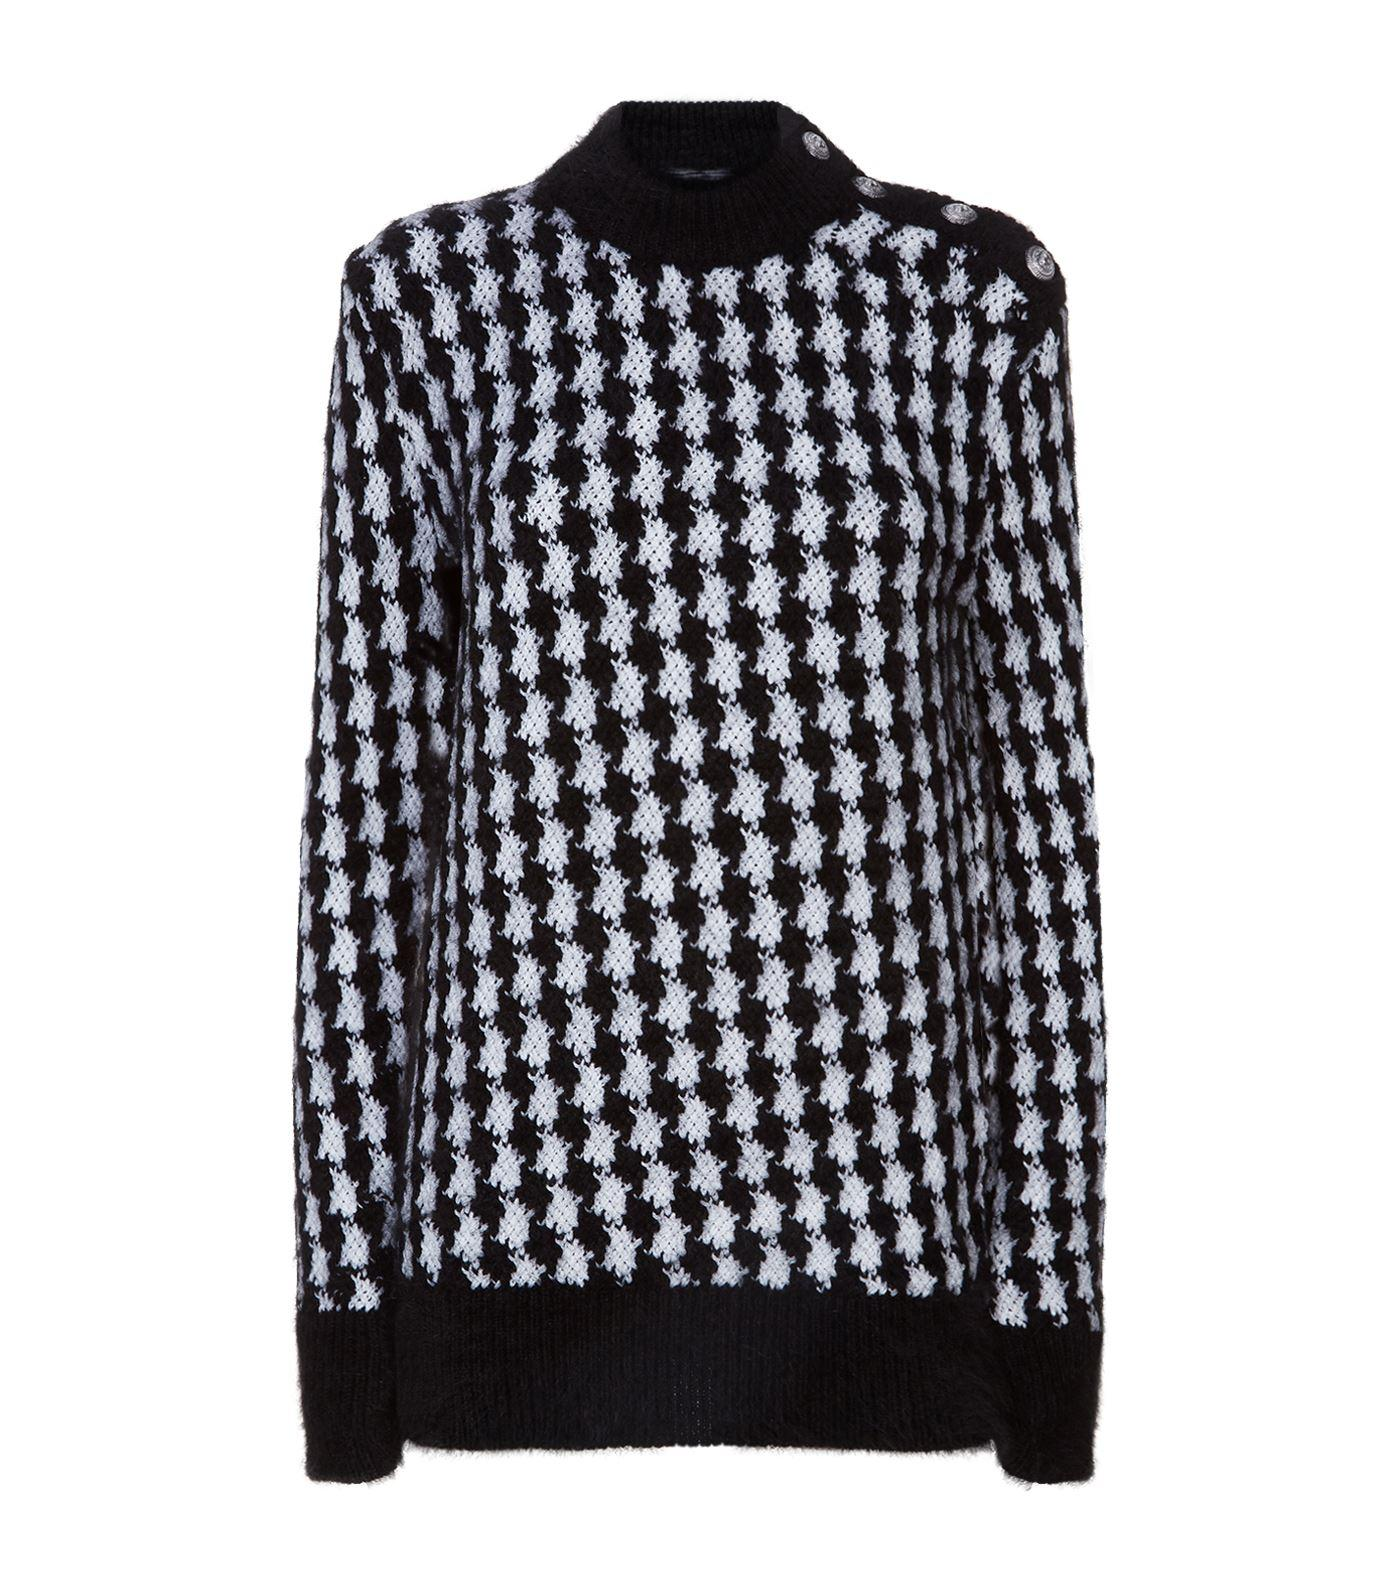 c0a4574aa04 Balmain Oversized Houndstooth Jumper In Black